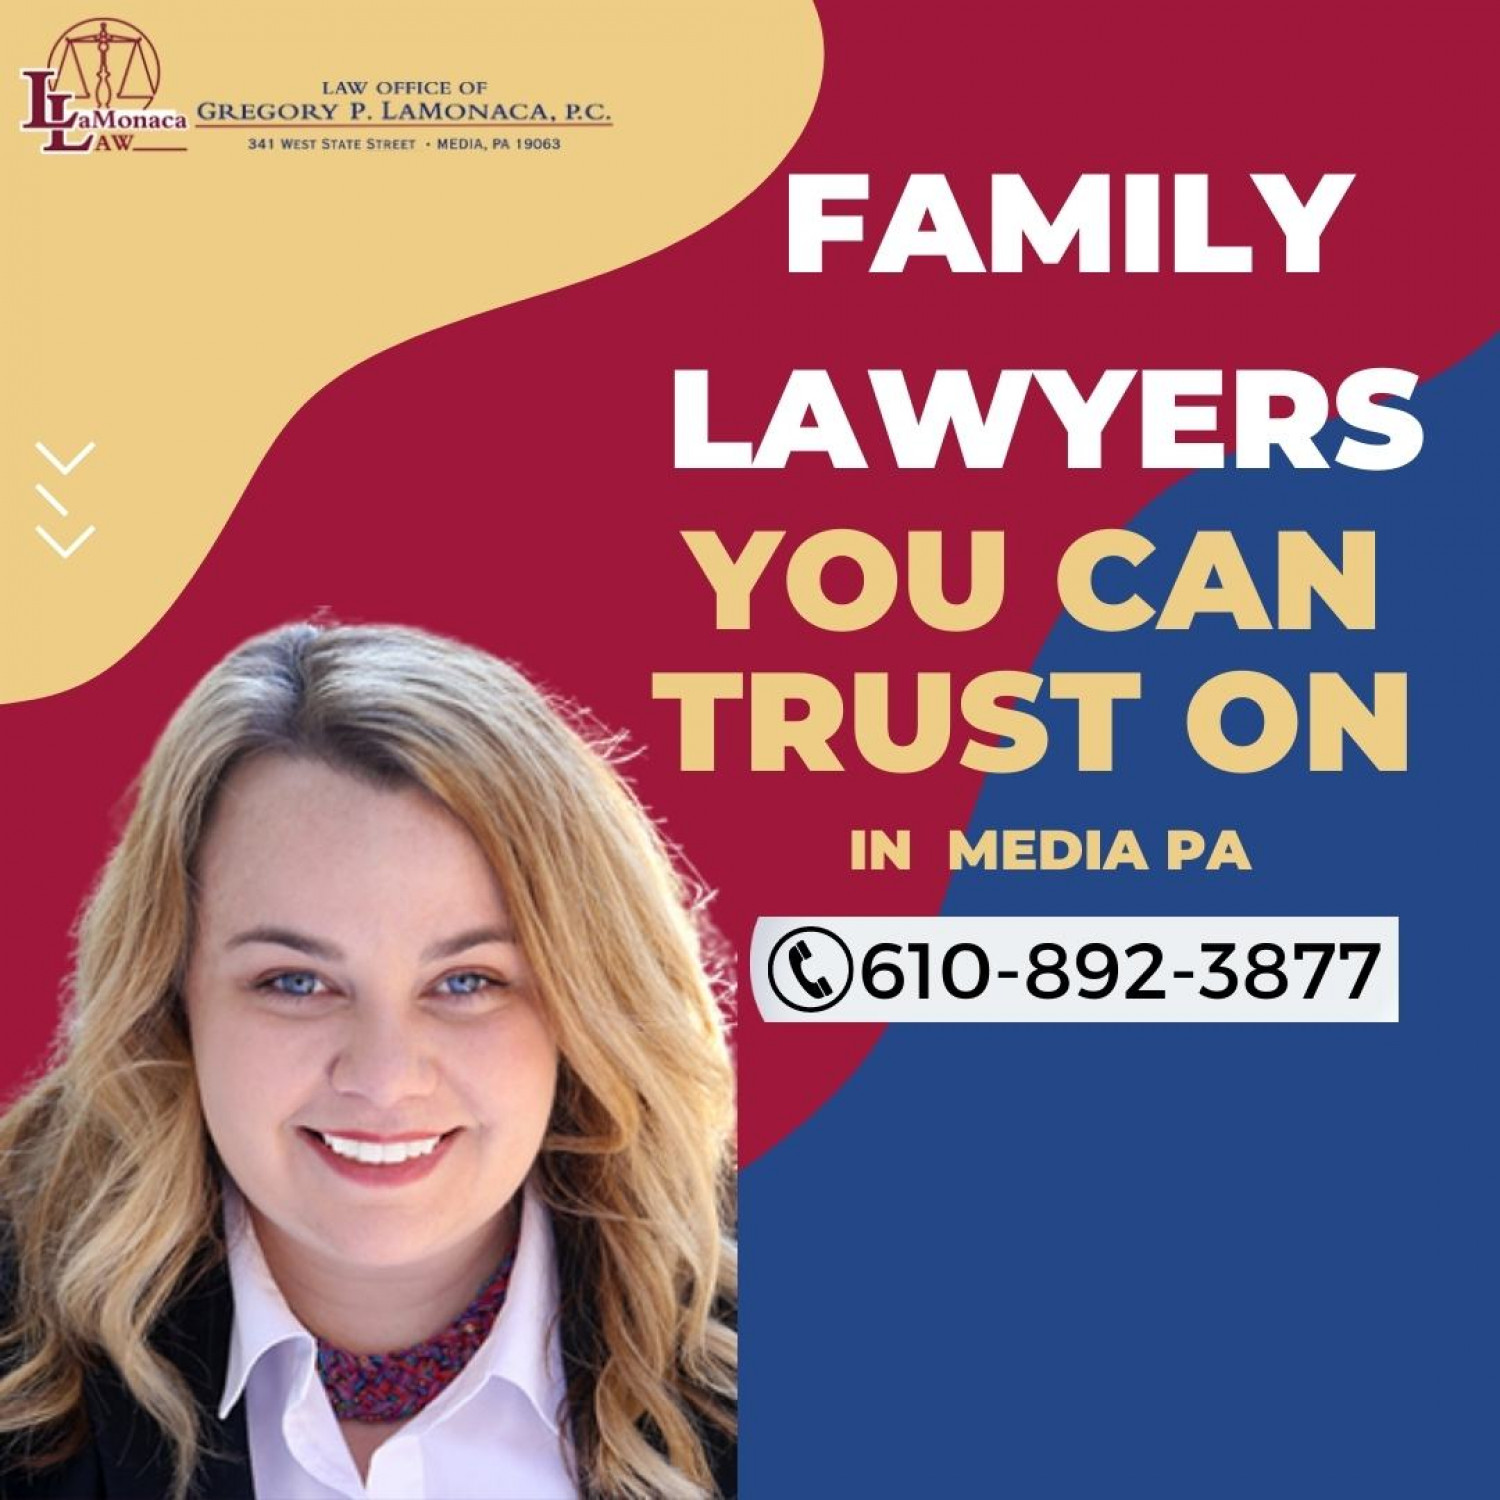 Family Lawyers You Can Trust On in  Media PA | LaMonaca Law  Infographic